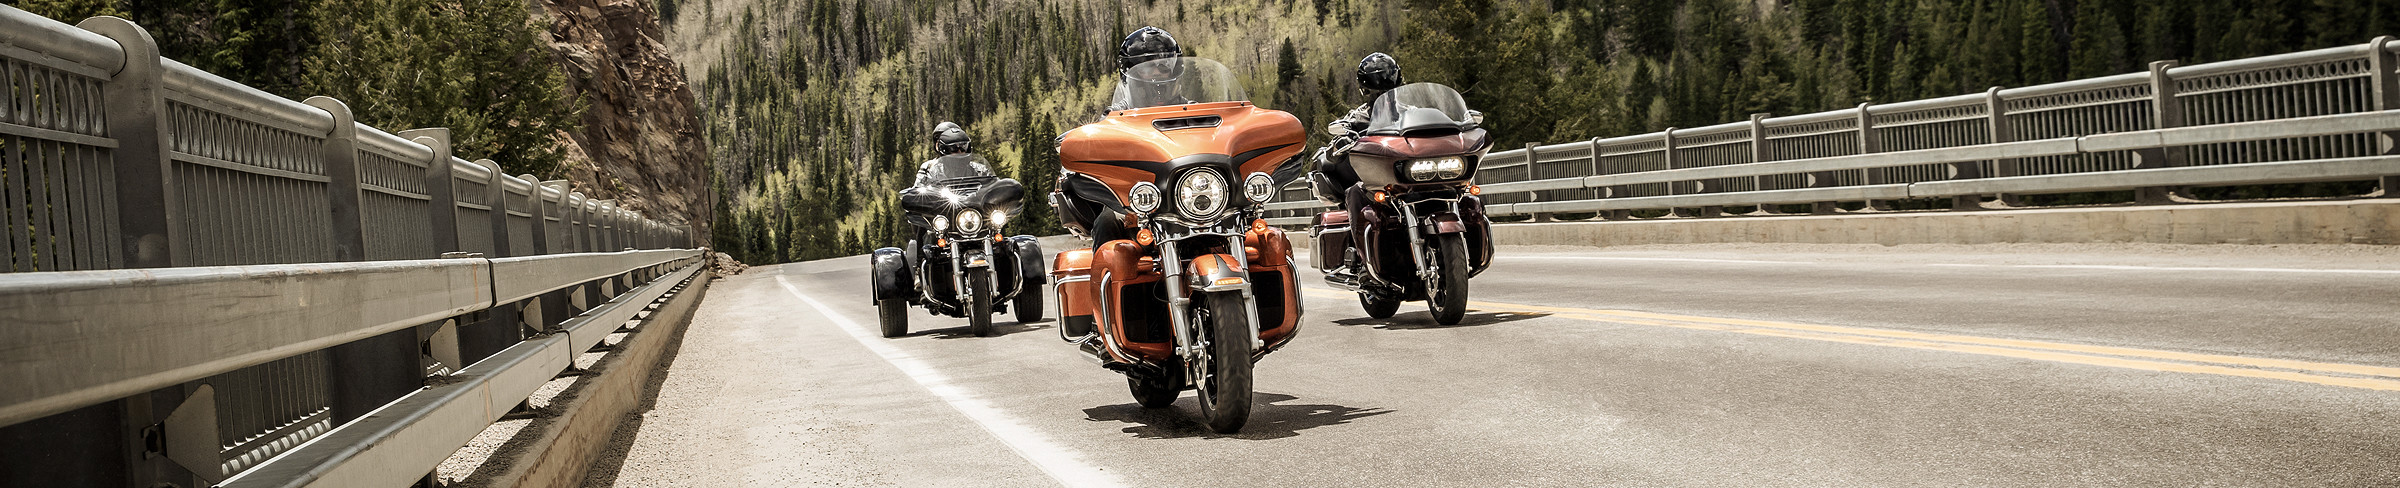 New Harley-Davidson Motorcycle Financing Specials